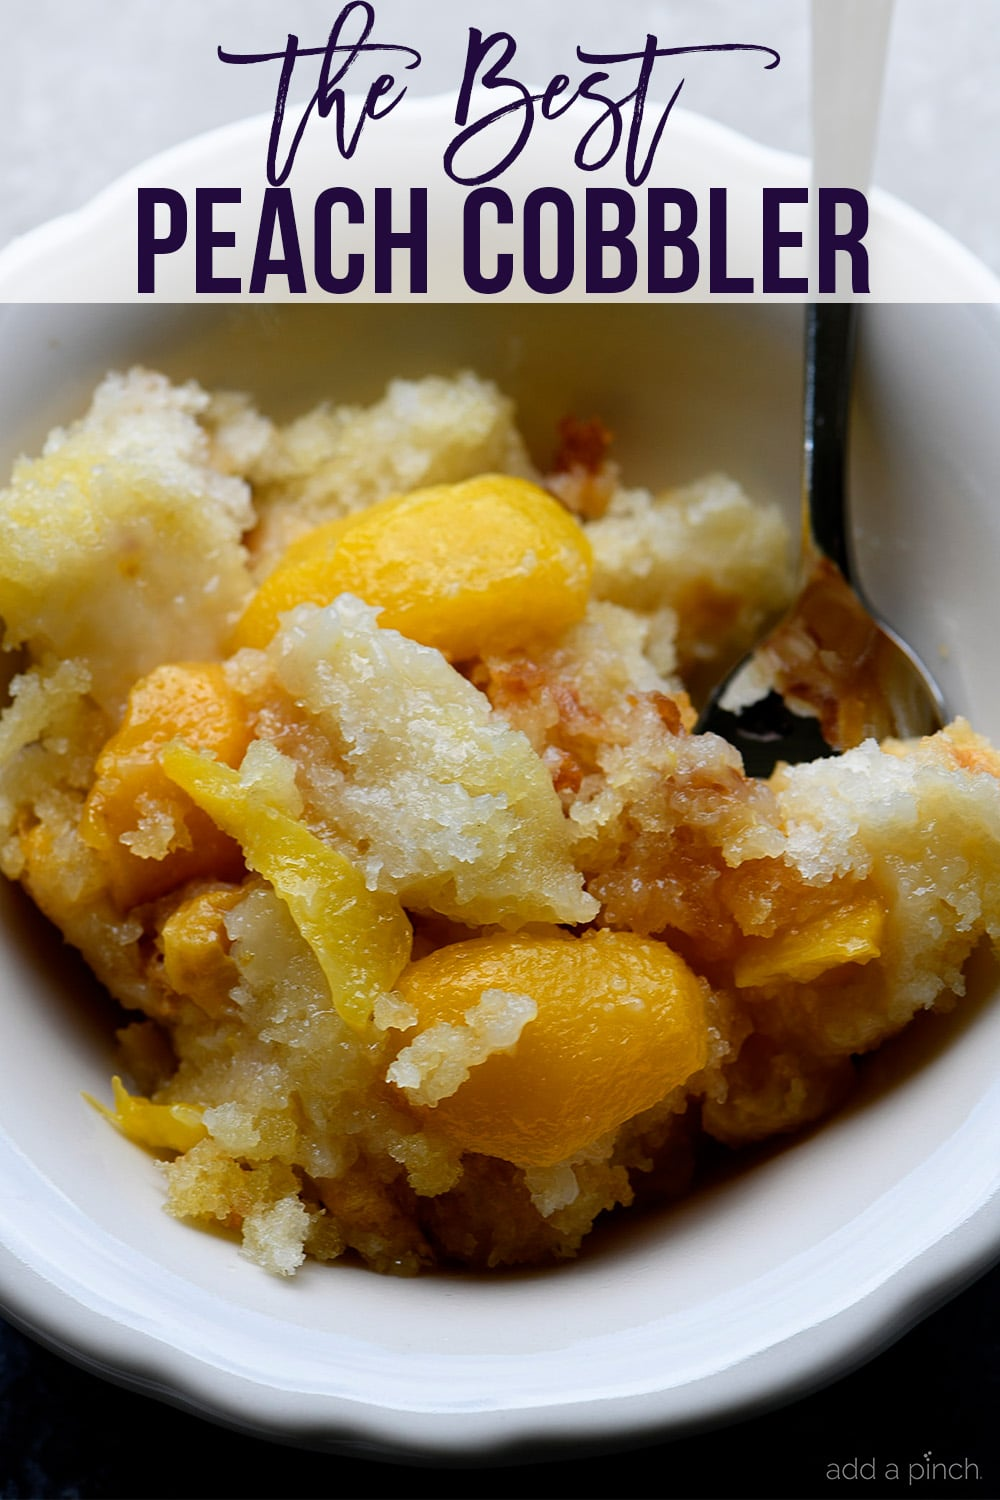 Bowl of Easy Peach Cobbler with spoon - with text - addapinch.com